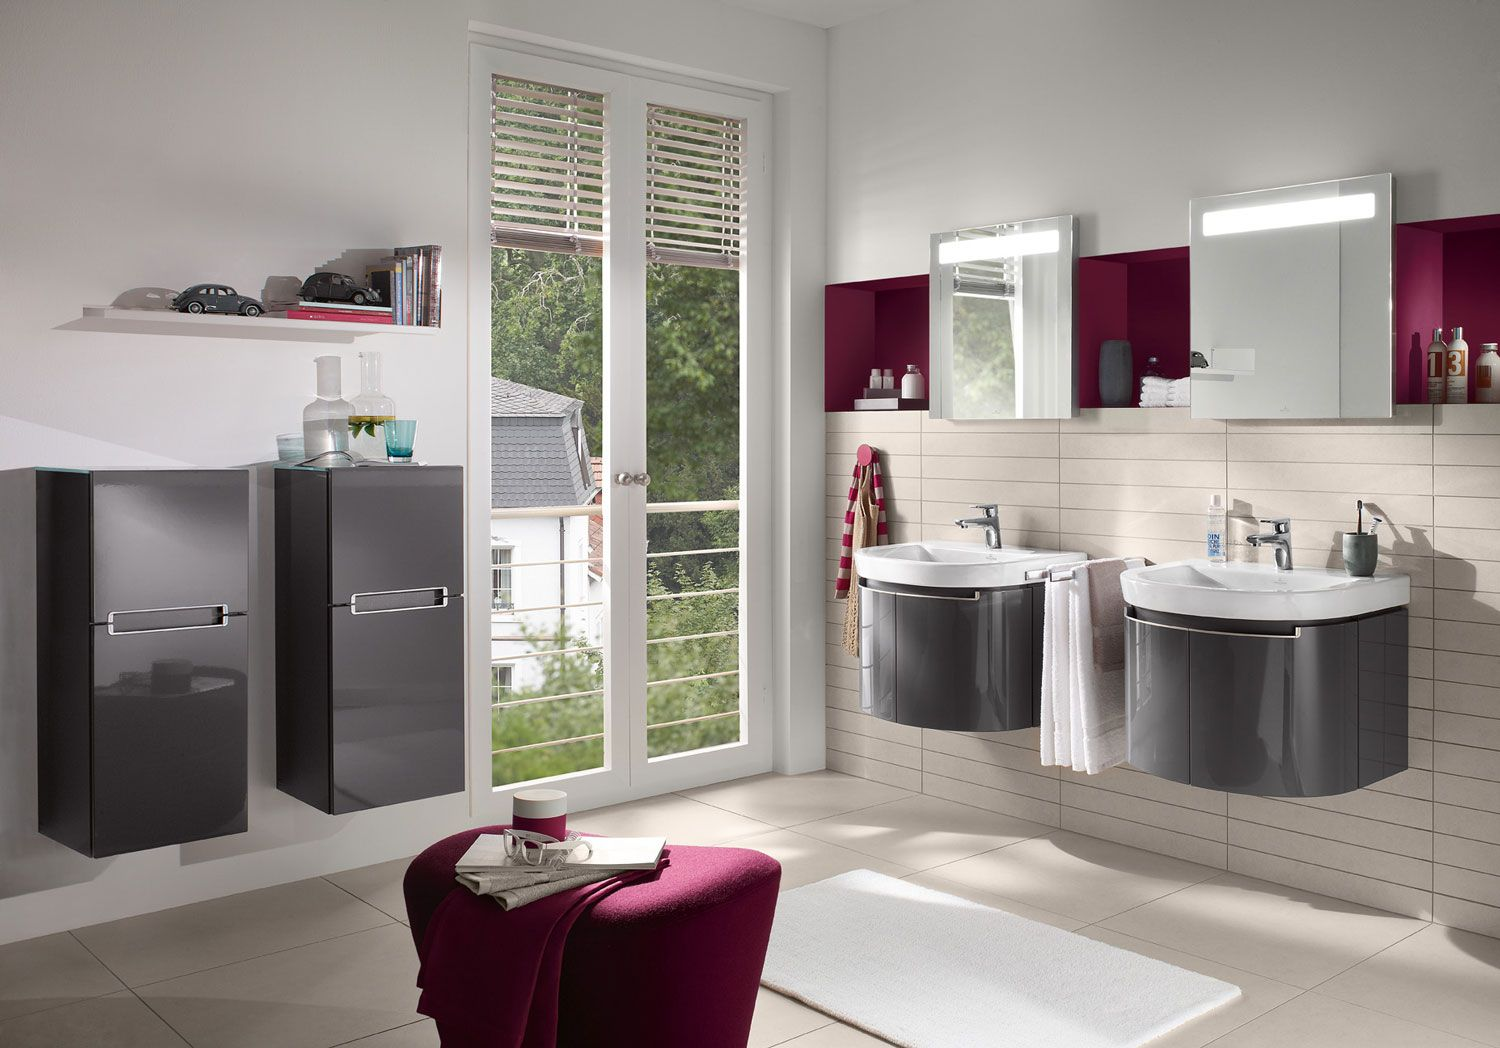 Superb Villeroy u Boch bathroom inspiration Collection Subway